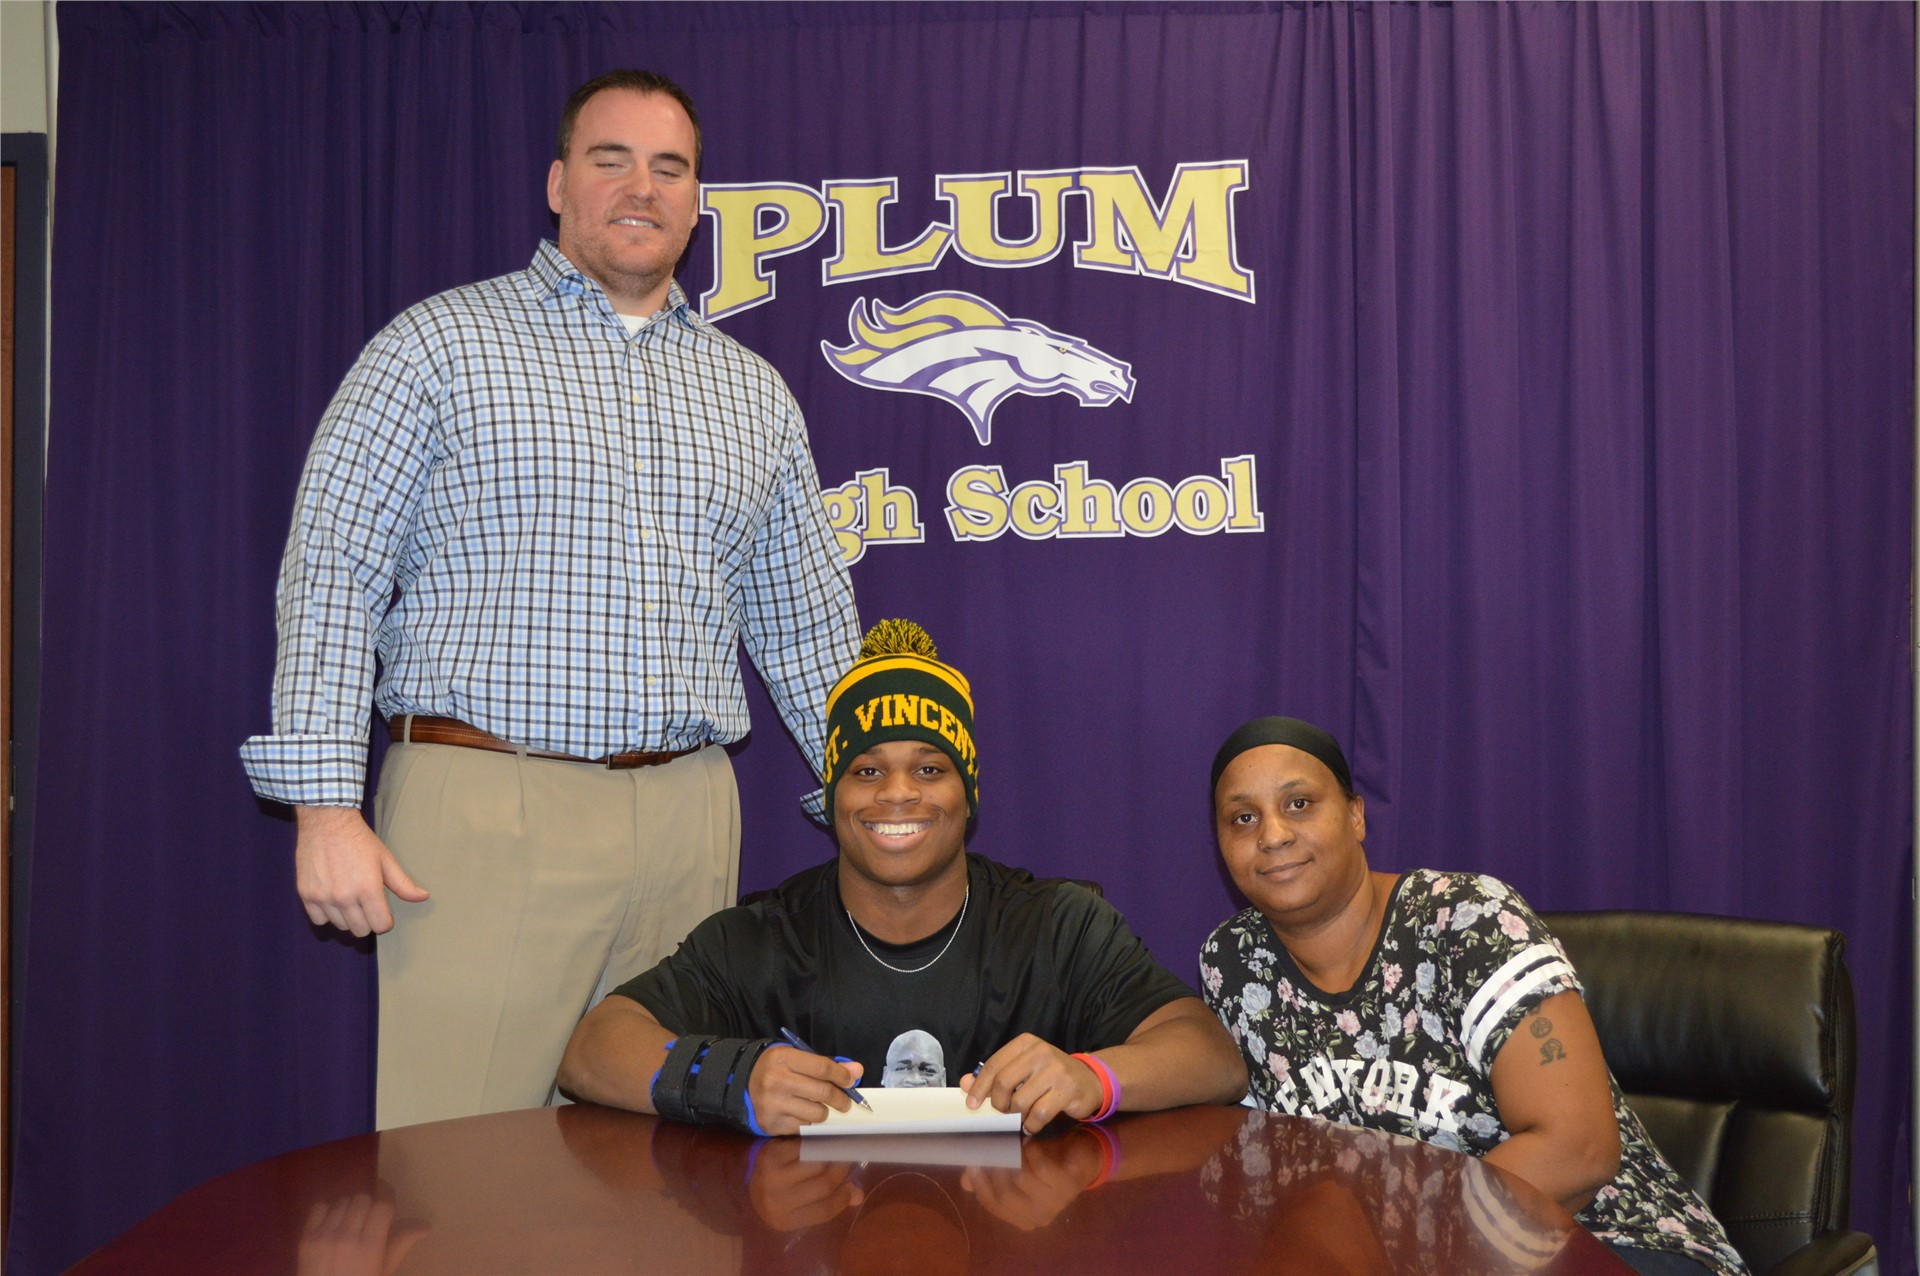 Keyshawn Smith commited to play football at St Vincent